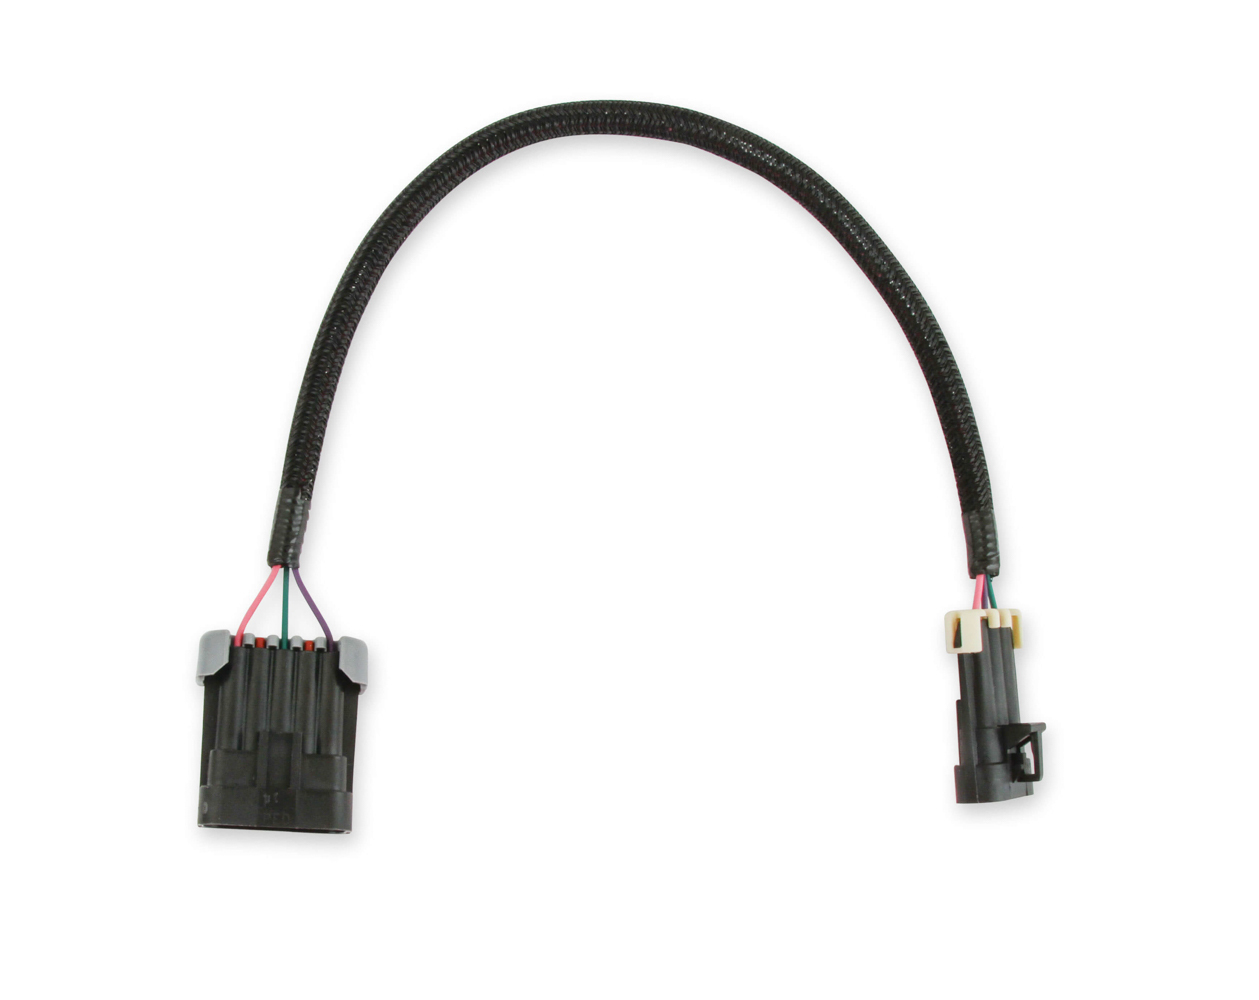 Holley 558-323 EFI Wiring Harness, Ignition Adapter Harness, HyperSpark Distributors to Holley EFI, Each